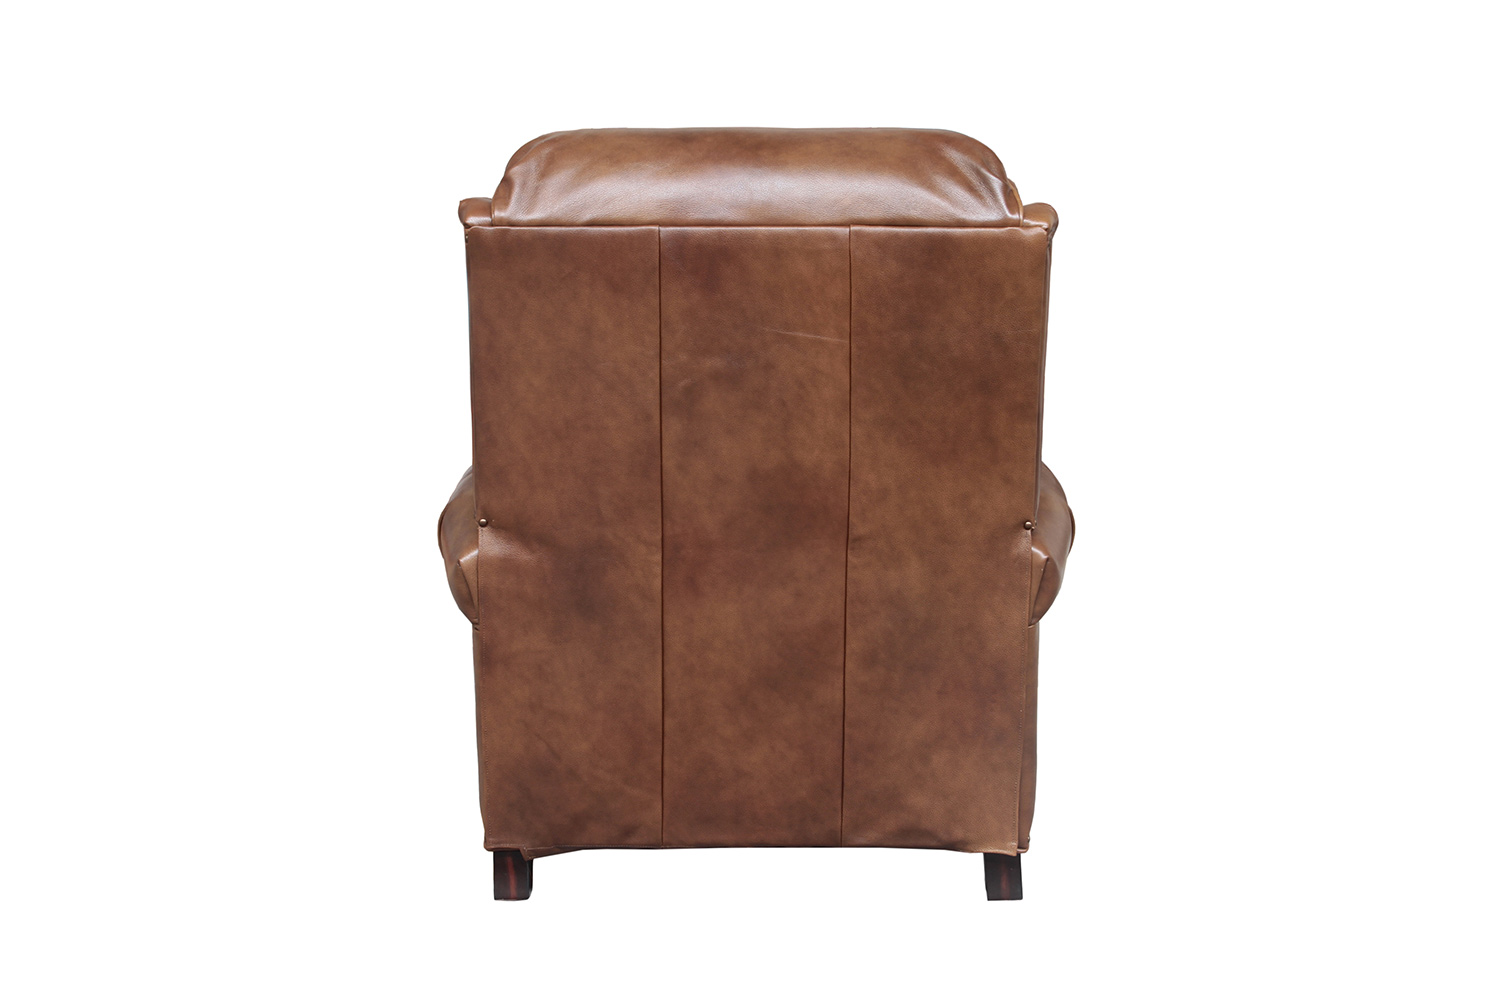 Barcalounger Avery Recliner Chair - Wenlock Tawny/All Leather